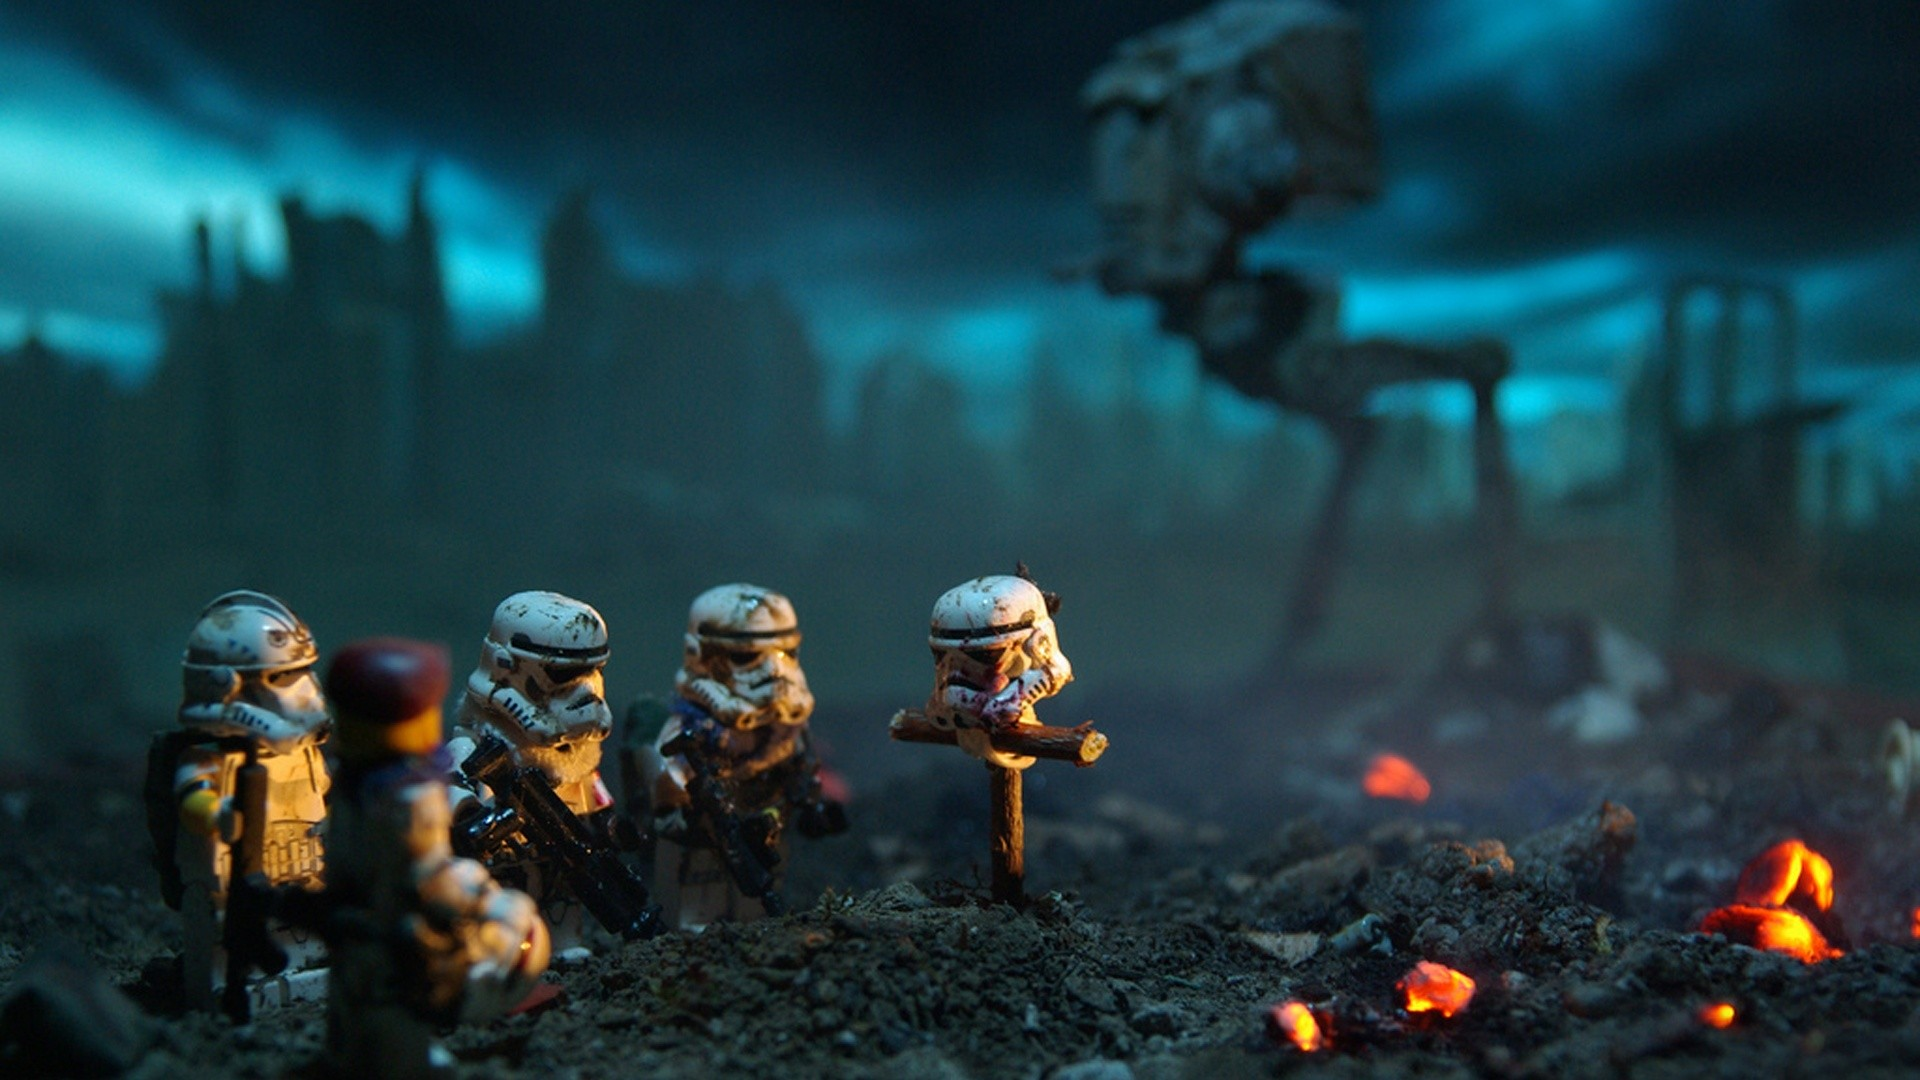 Star Wars Lego Cool Pictures HD wallpaper 1920x1080